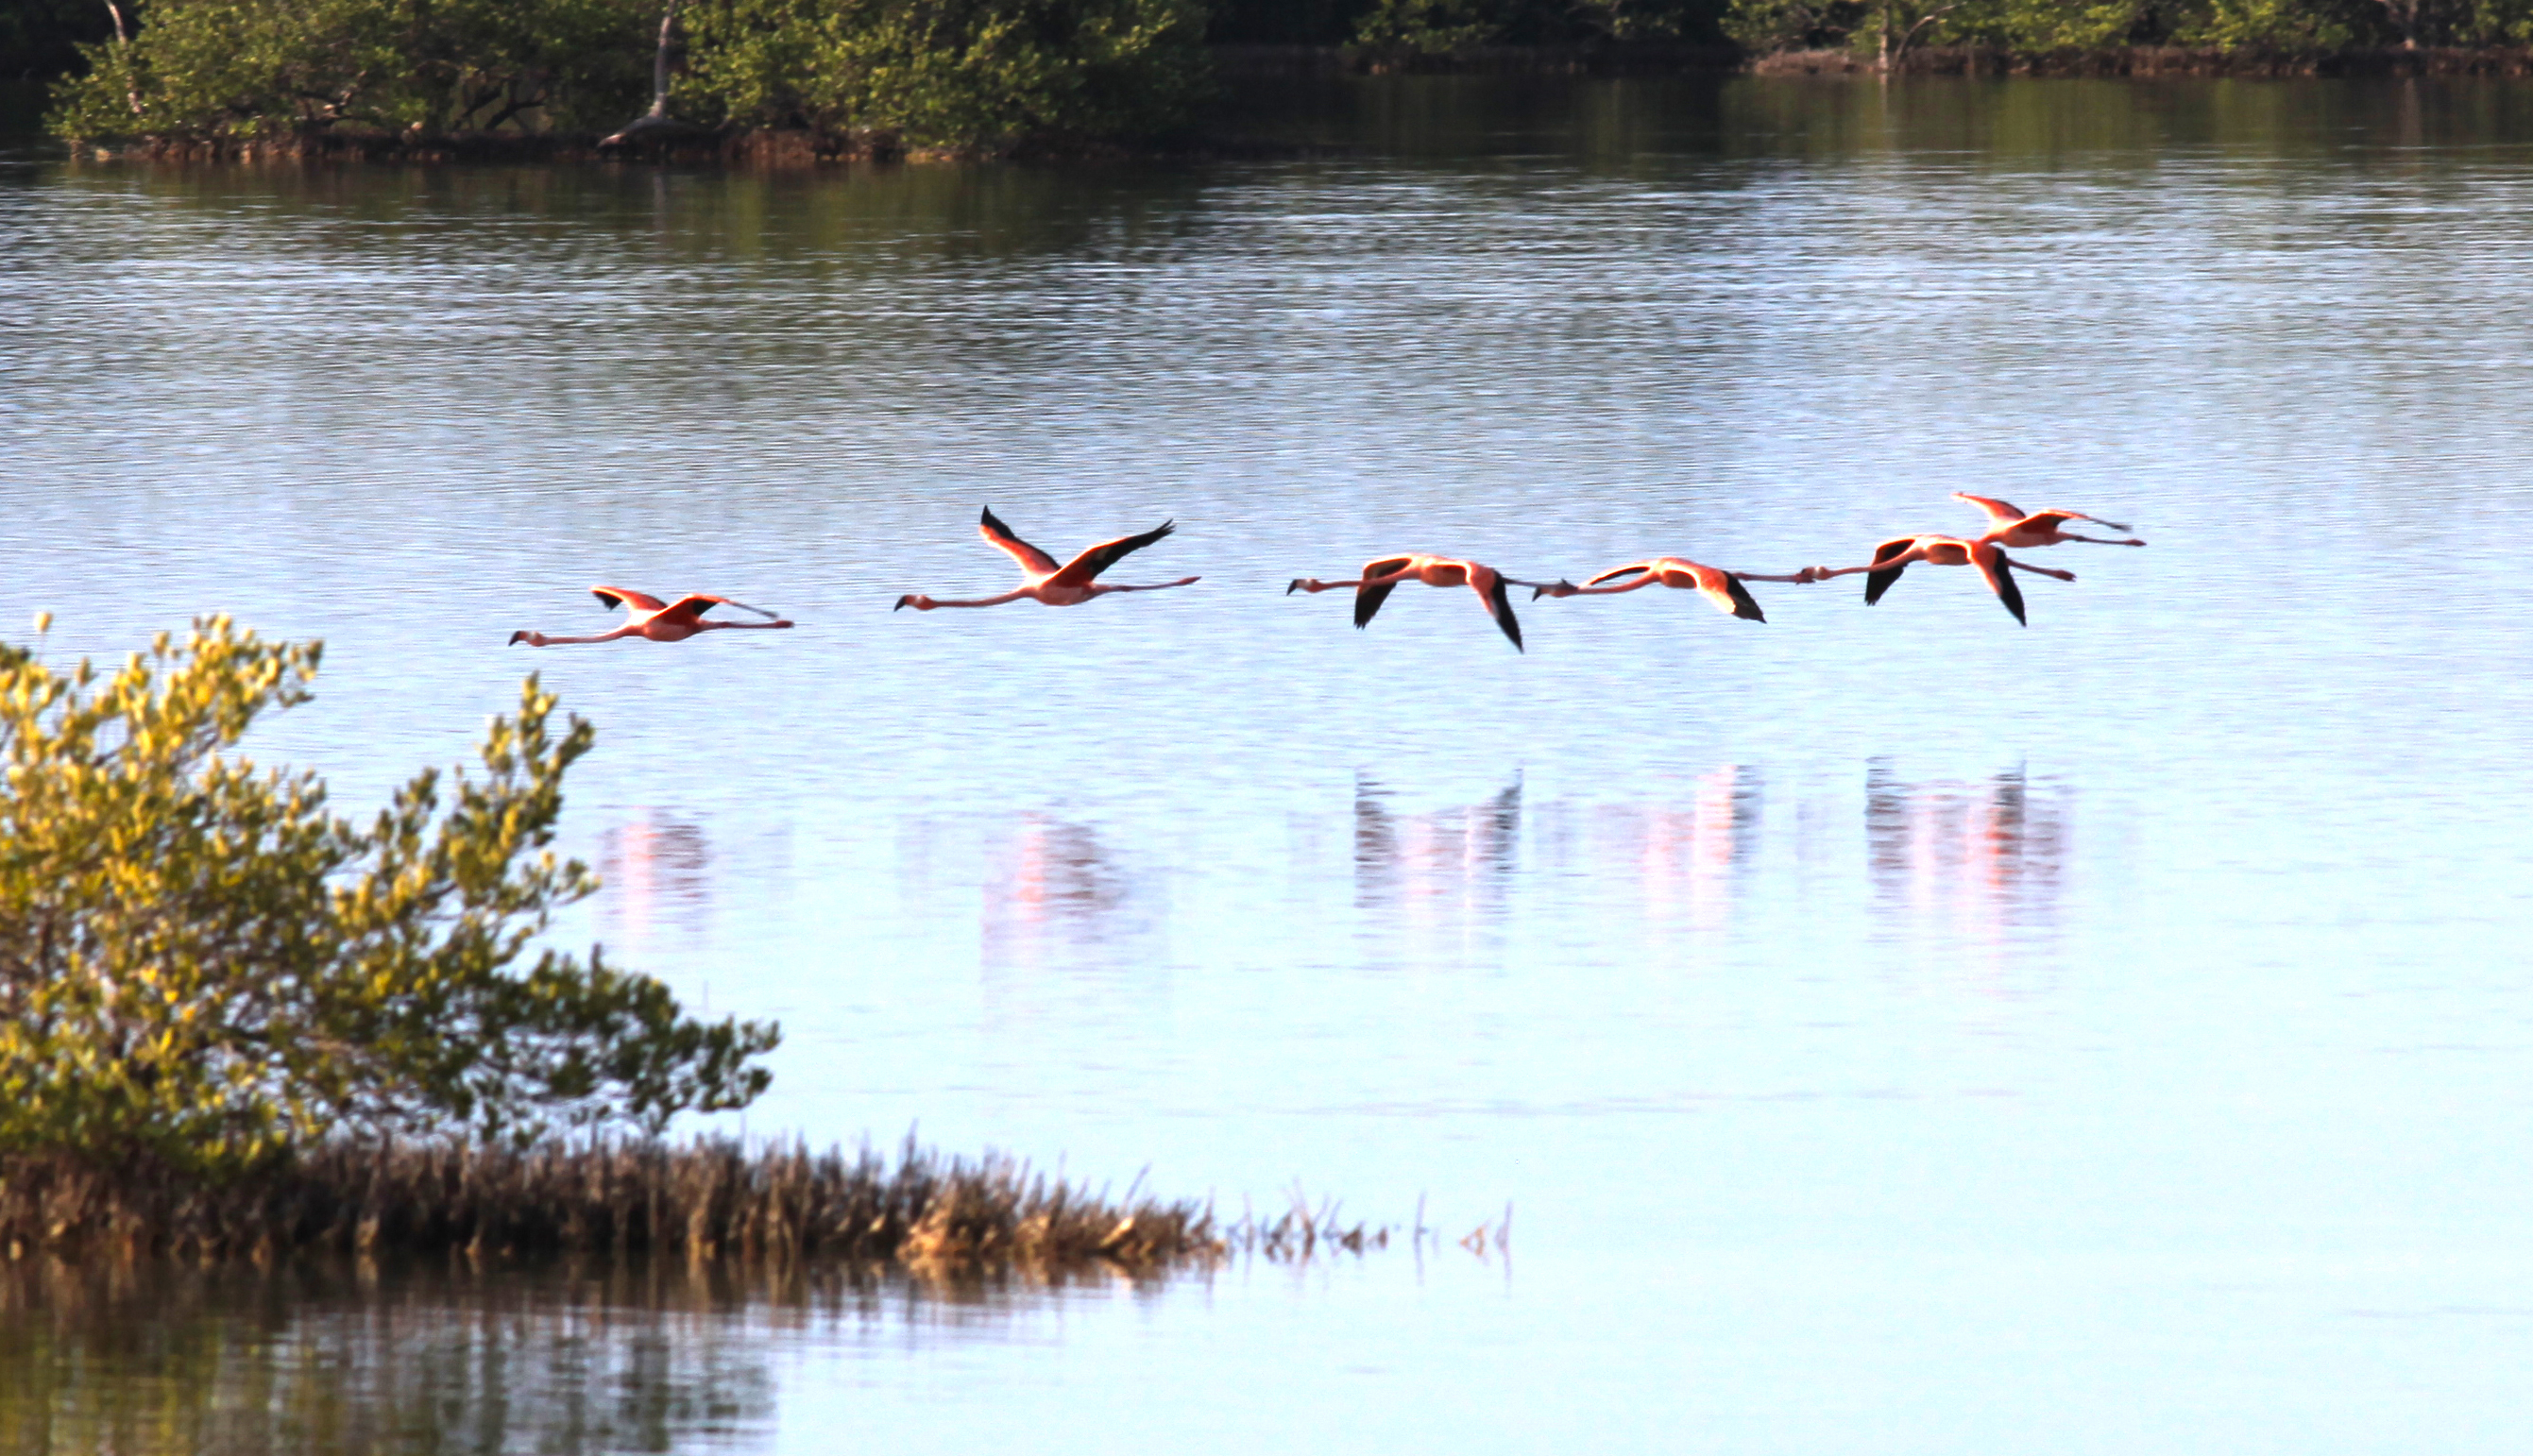 The Chorus Line of Greater Flamingos